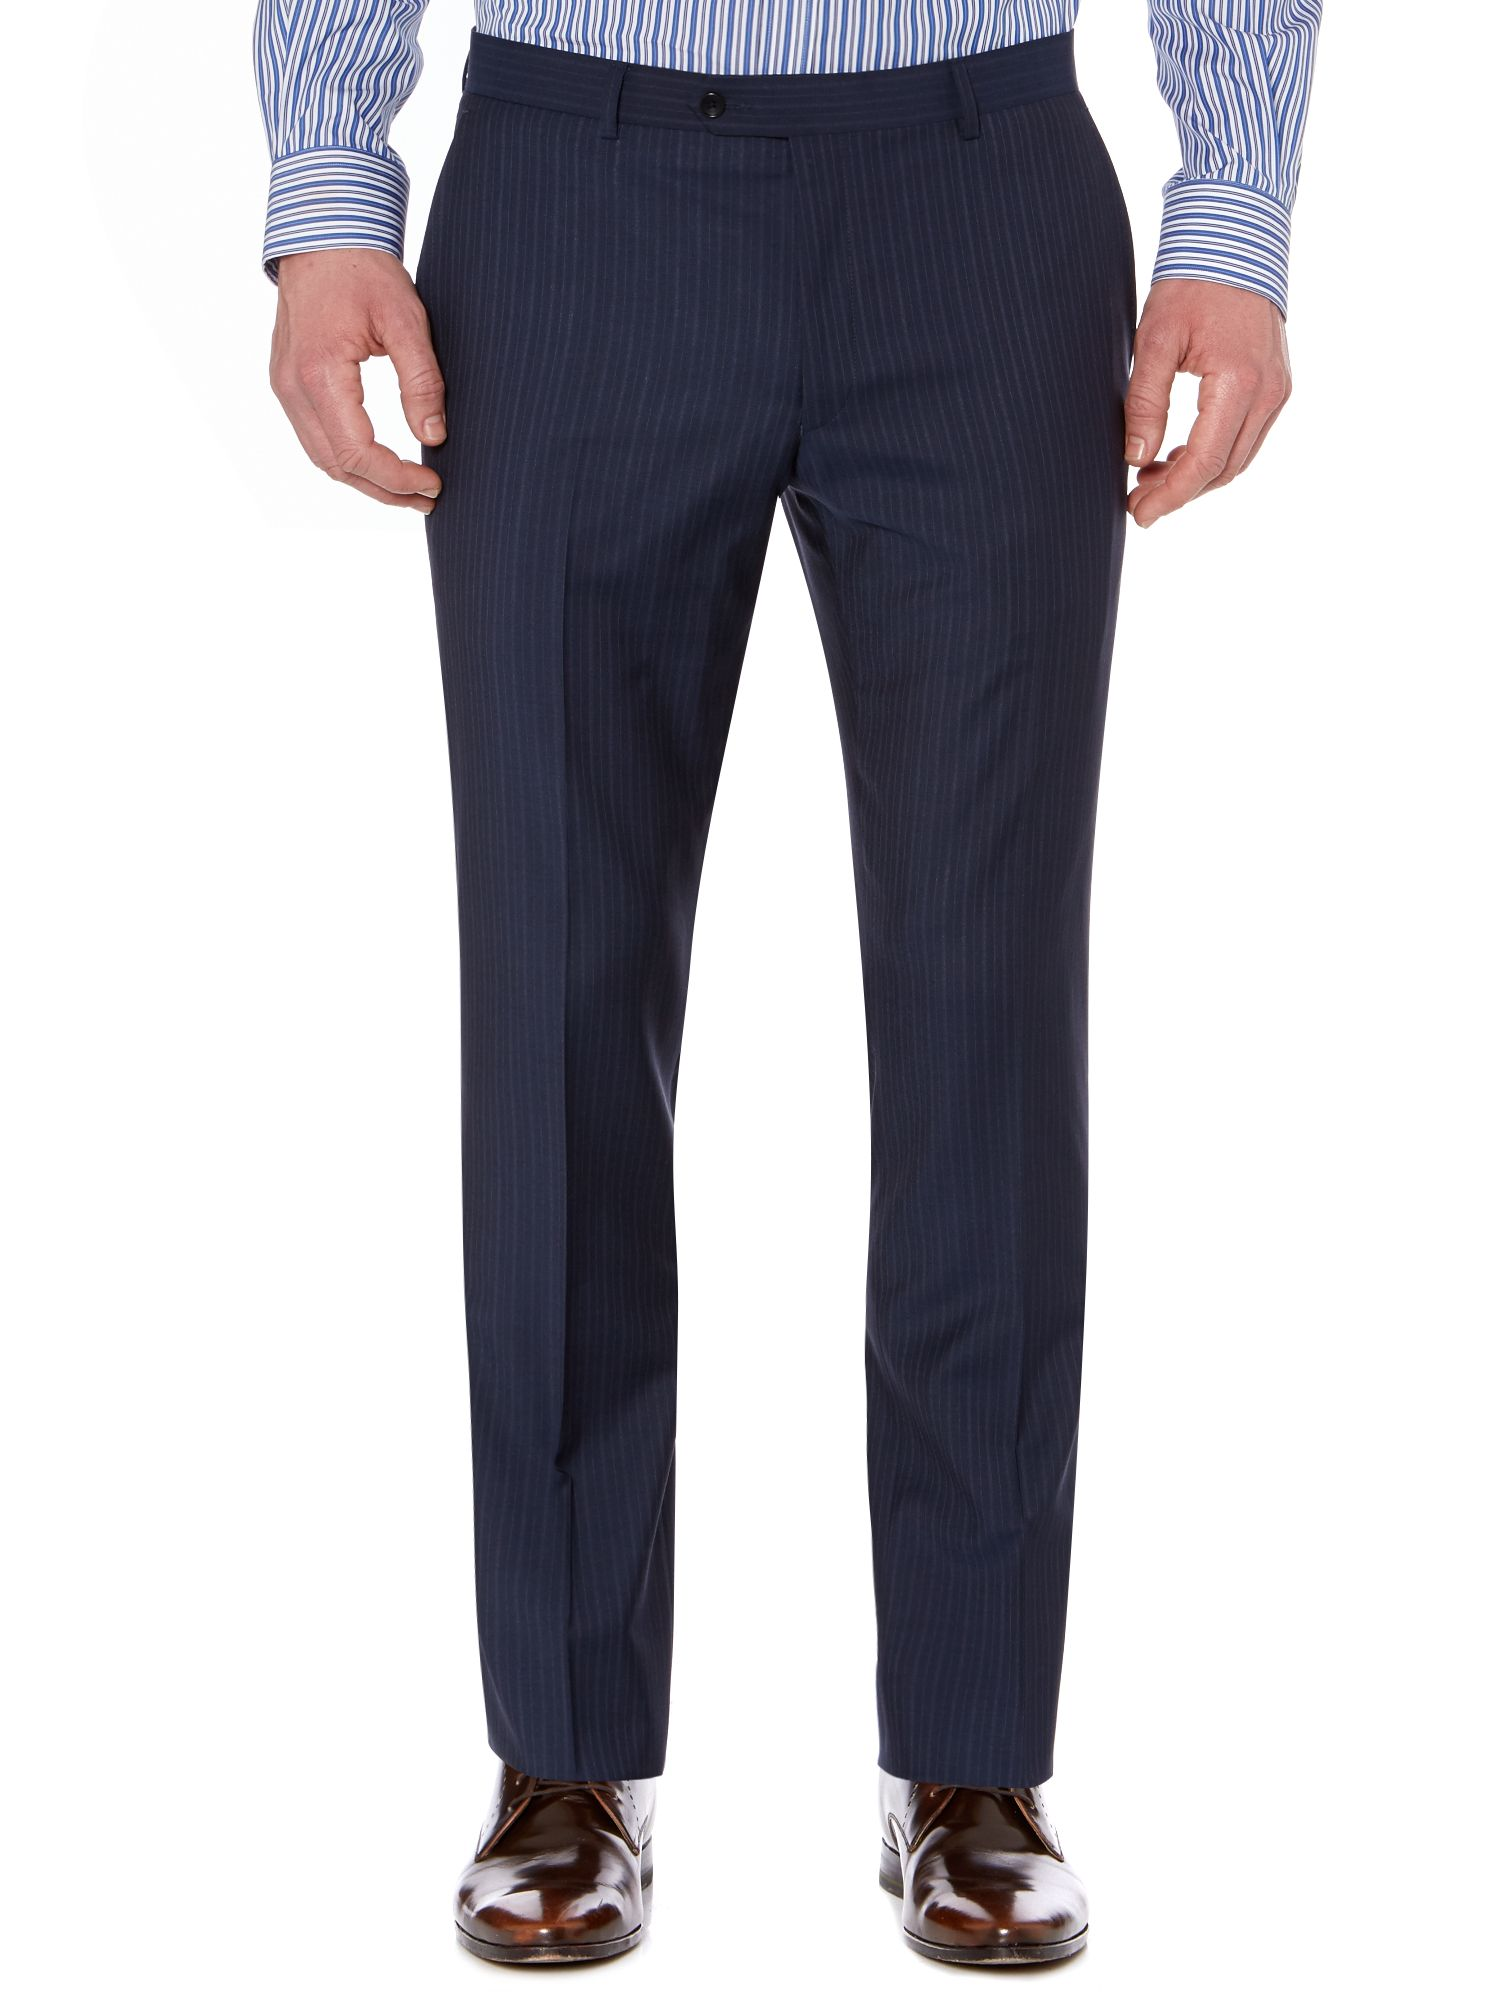 Borbero multistripe suit trousers